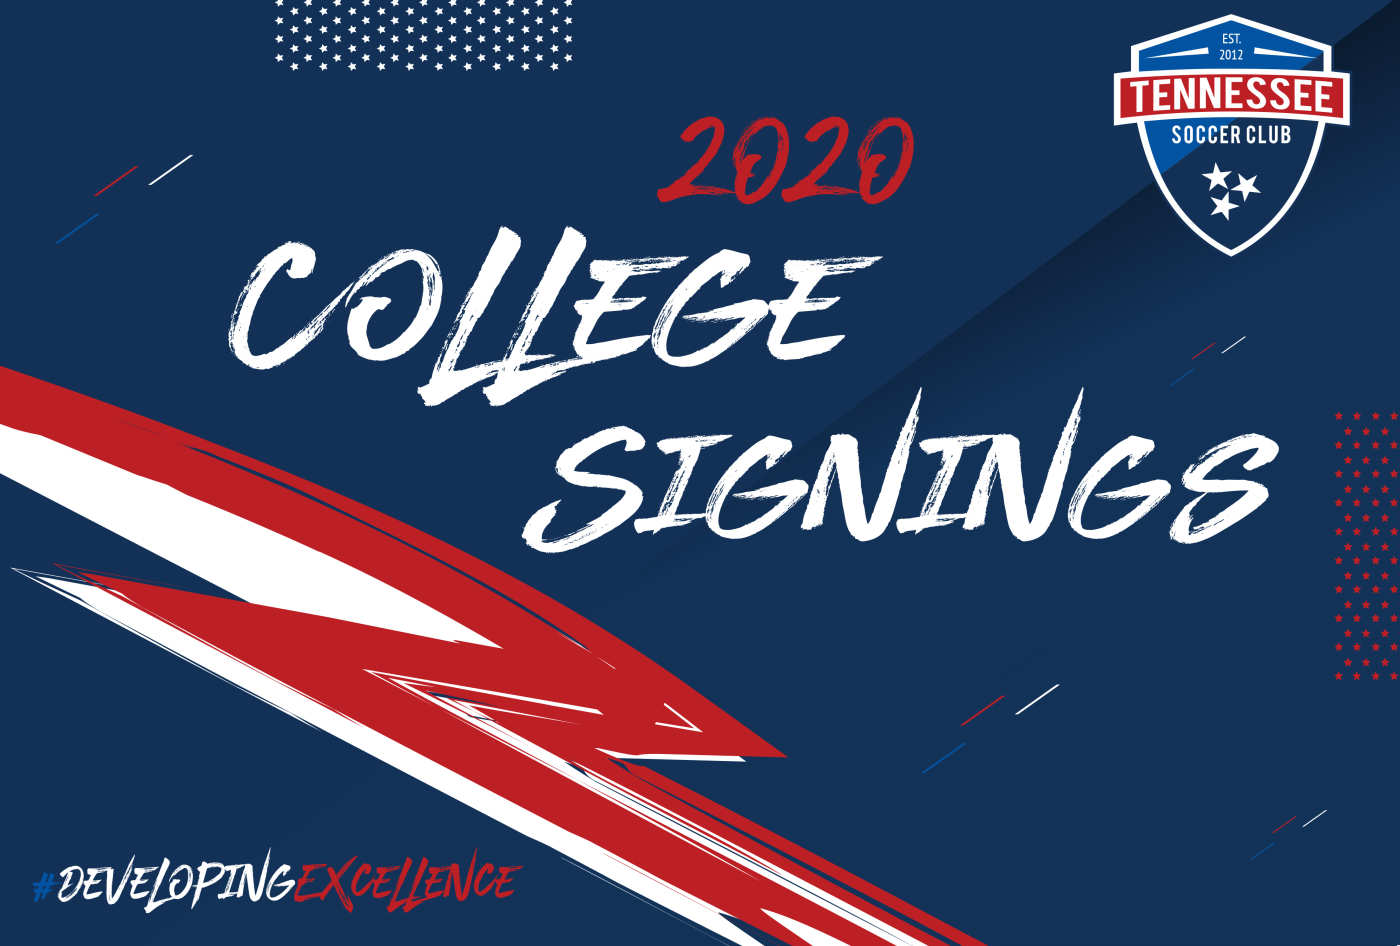 TSC Players Signing NLI on Spring 2020 Signing Day